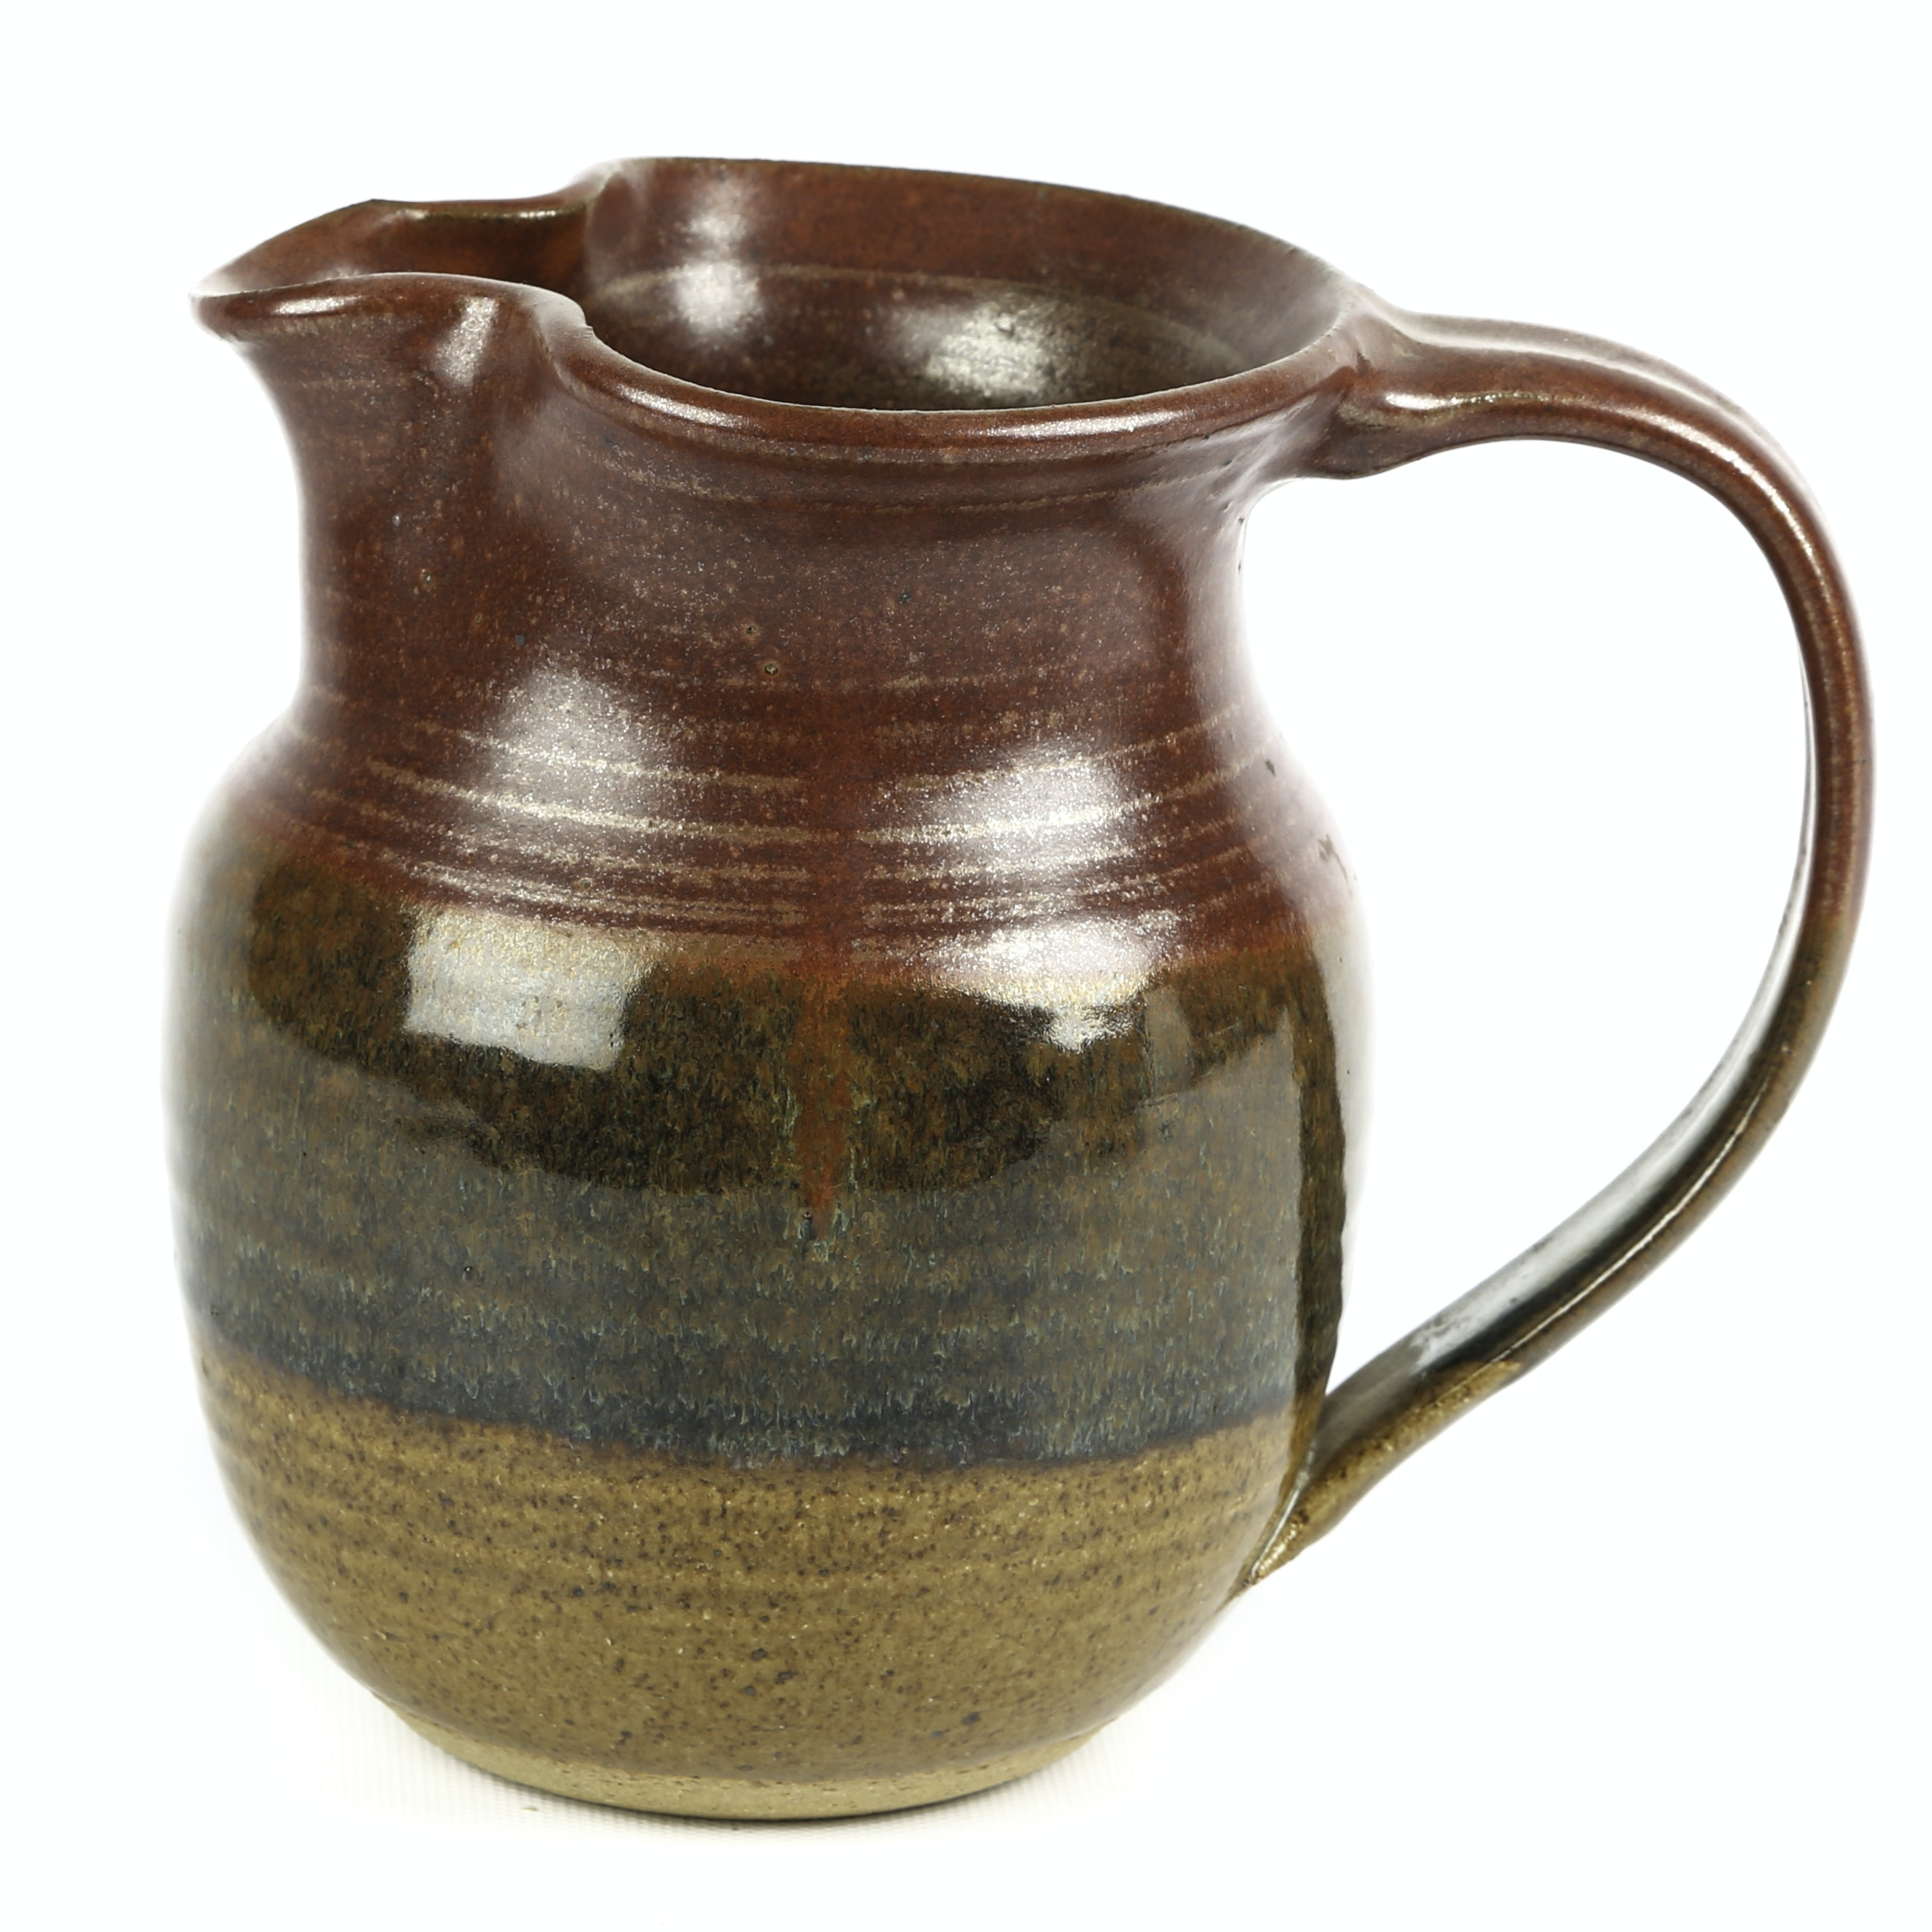 Signed Hand-Thrown Stoneware Pitcher